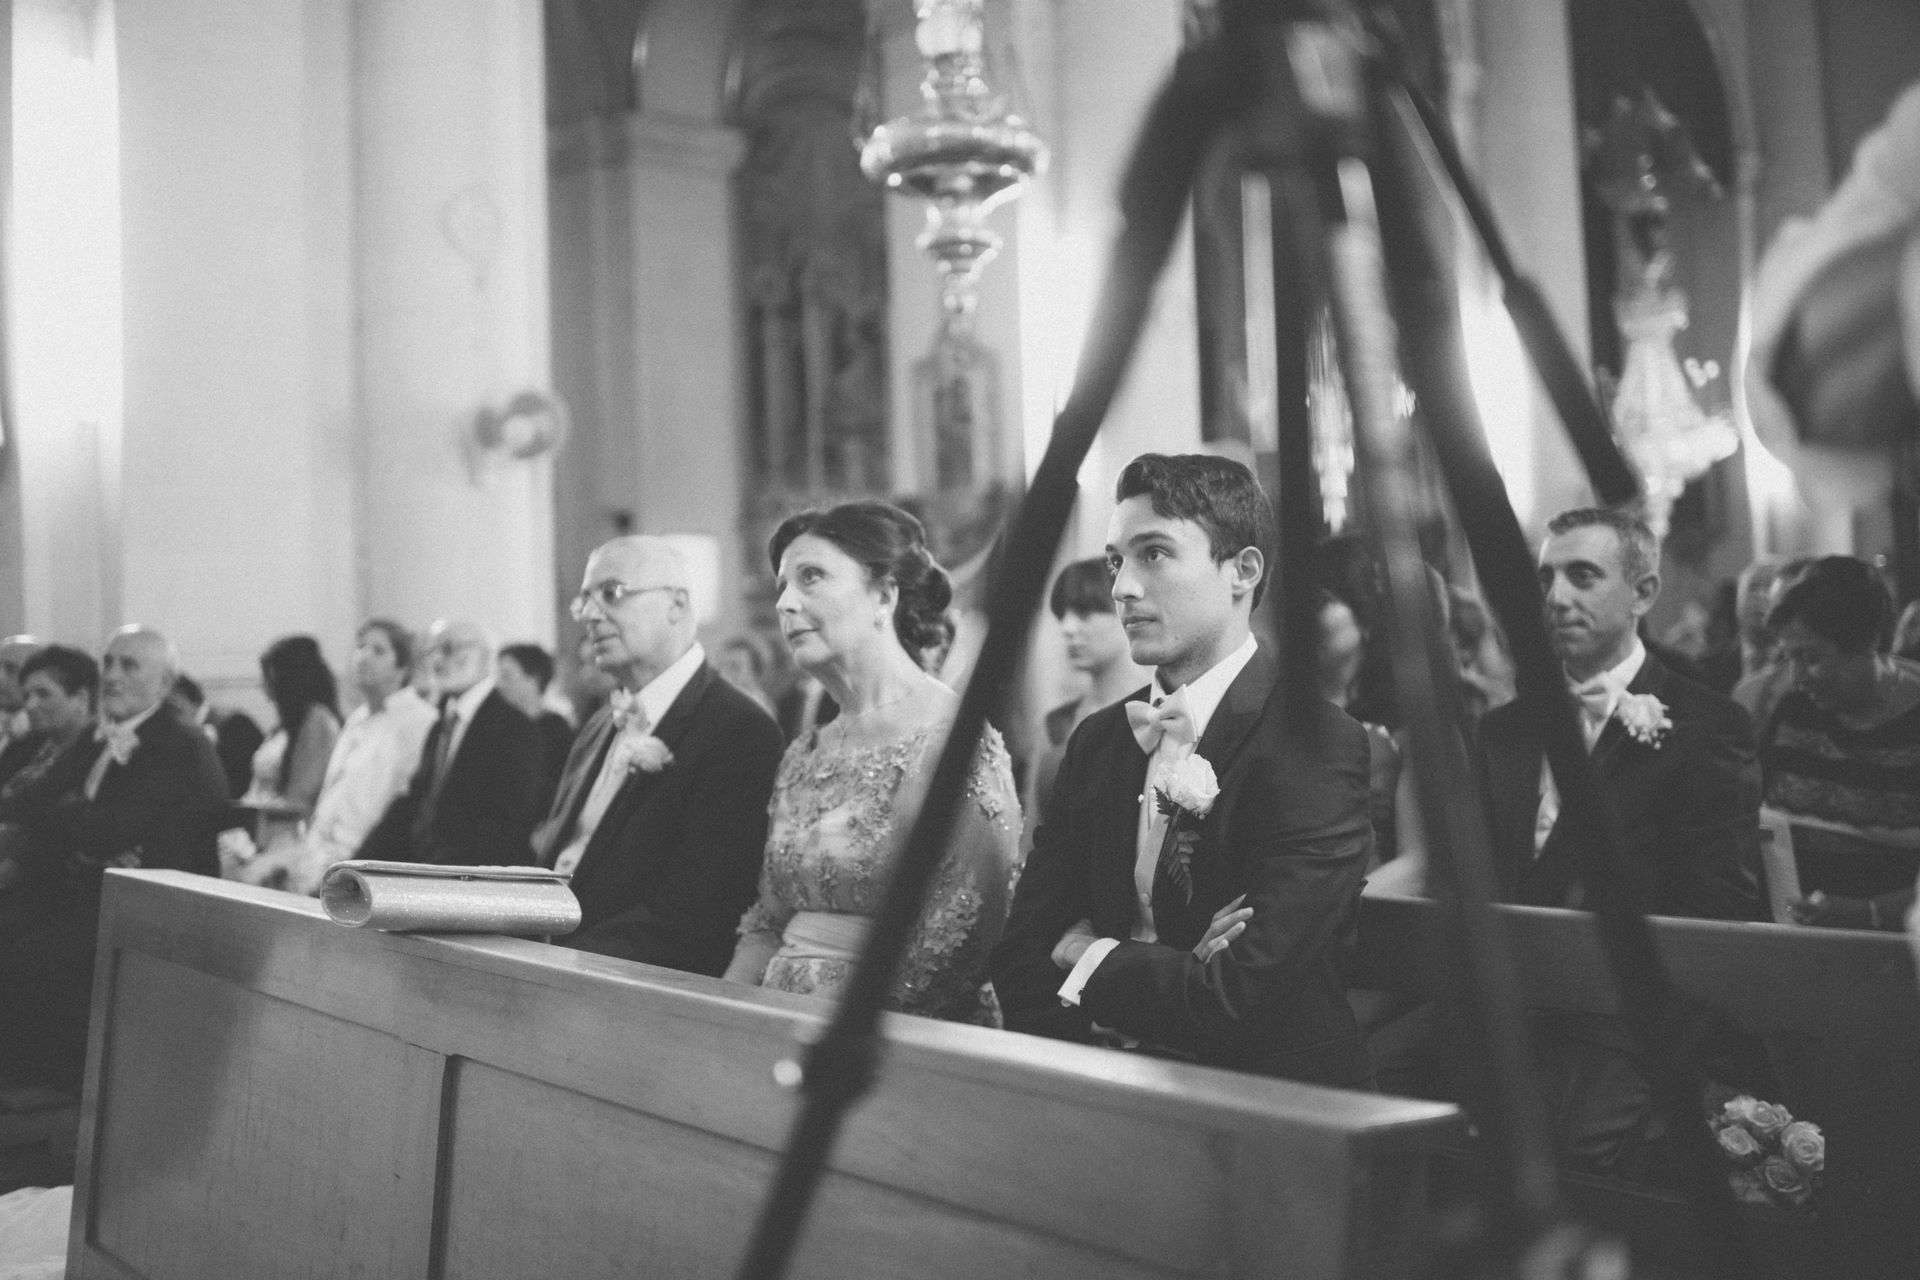 wedding-photographer-malta-130